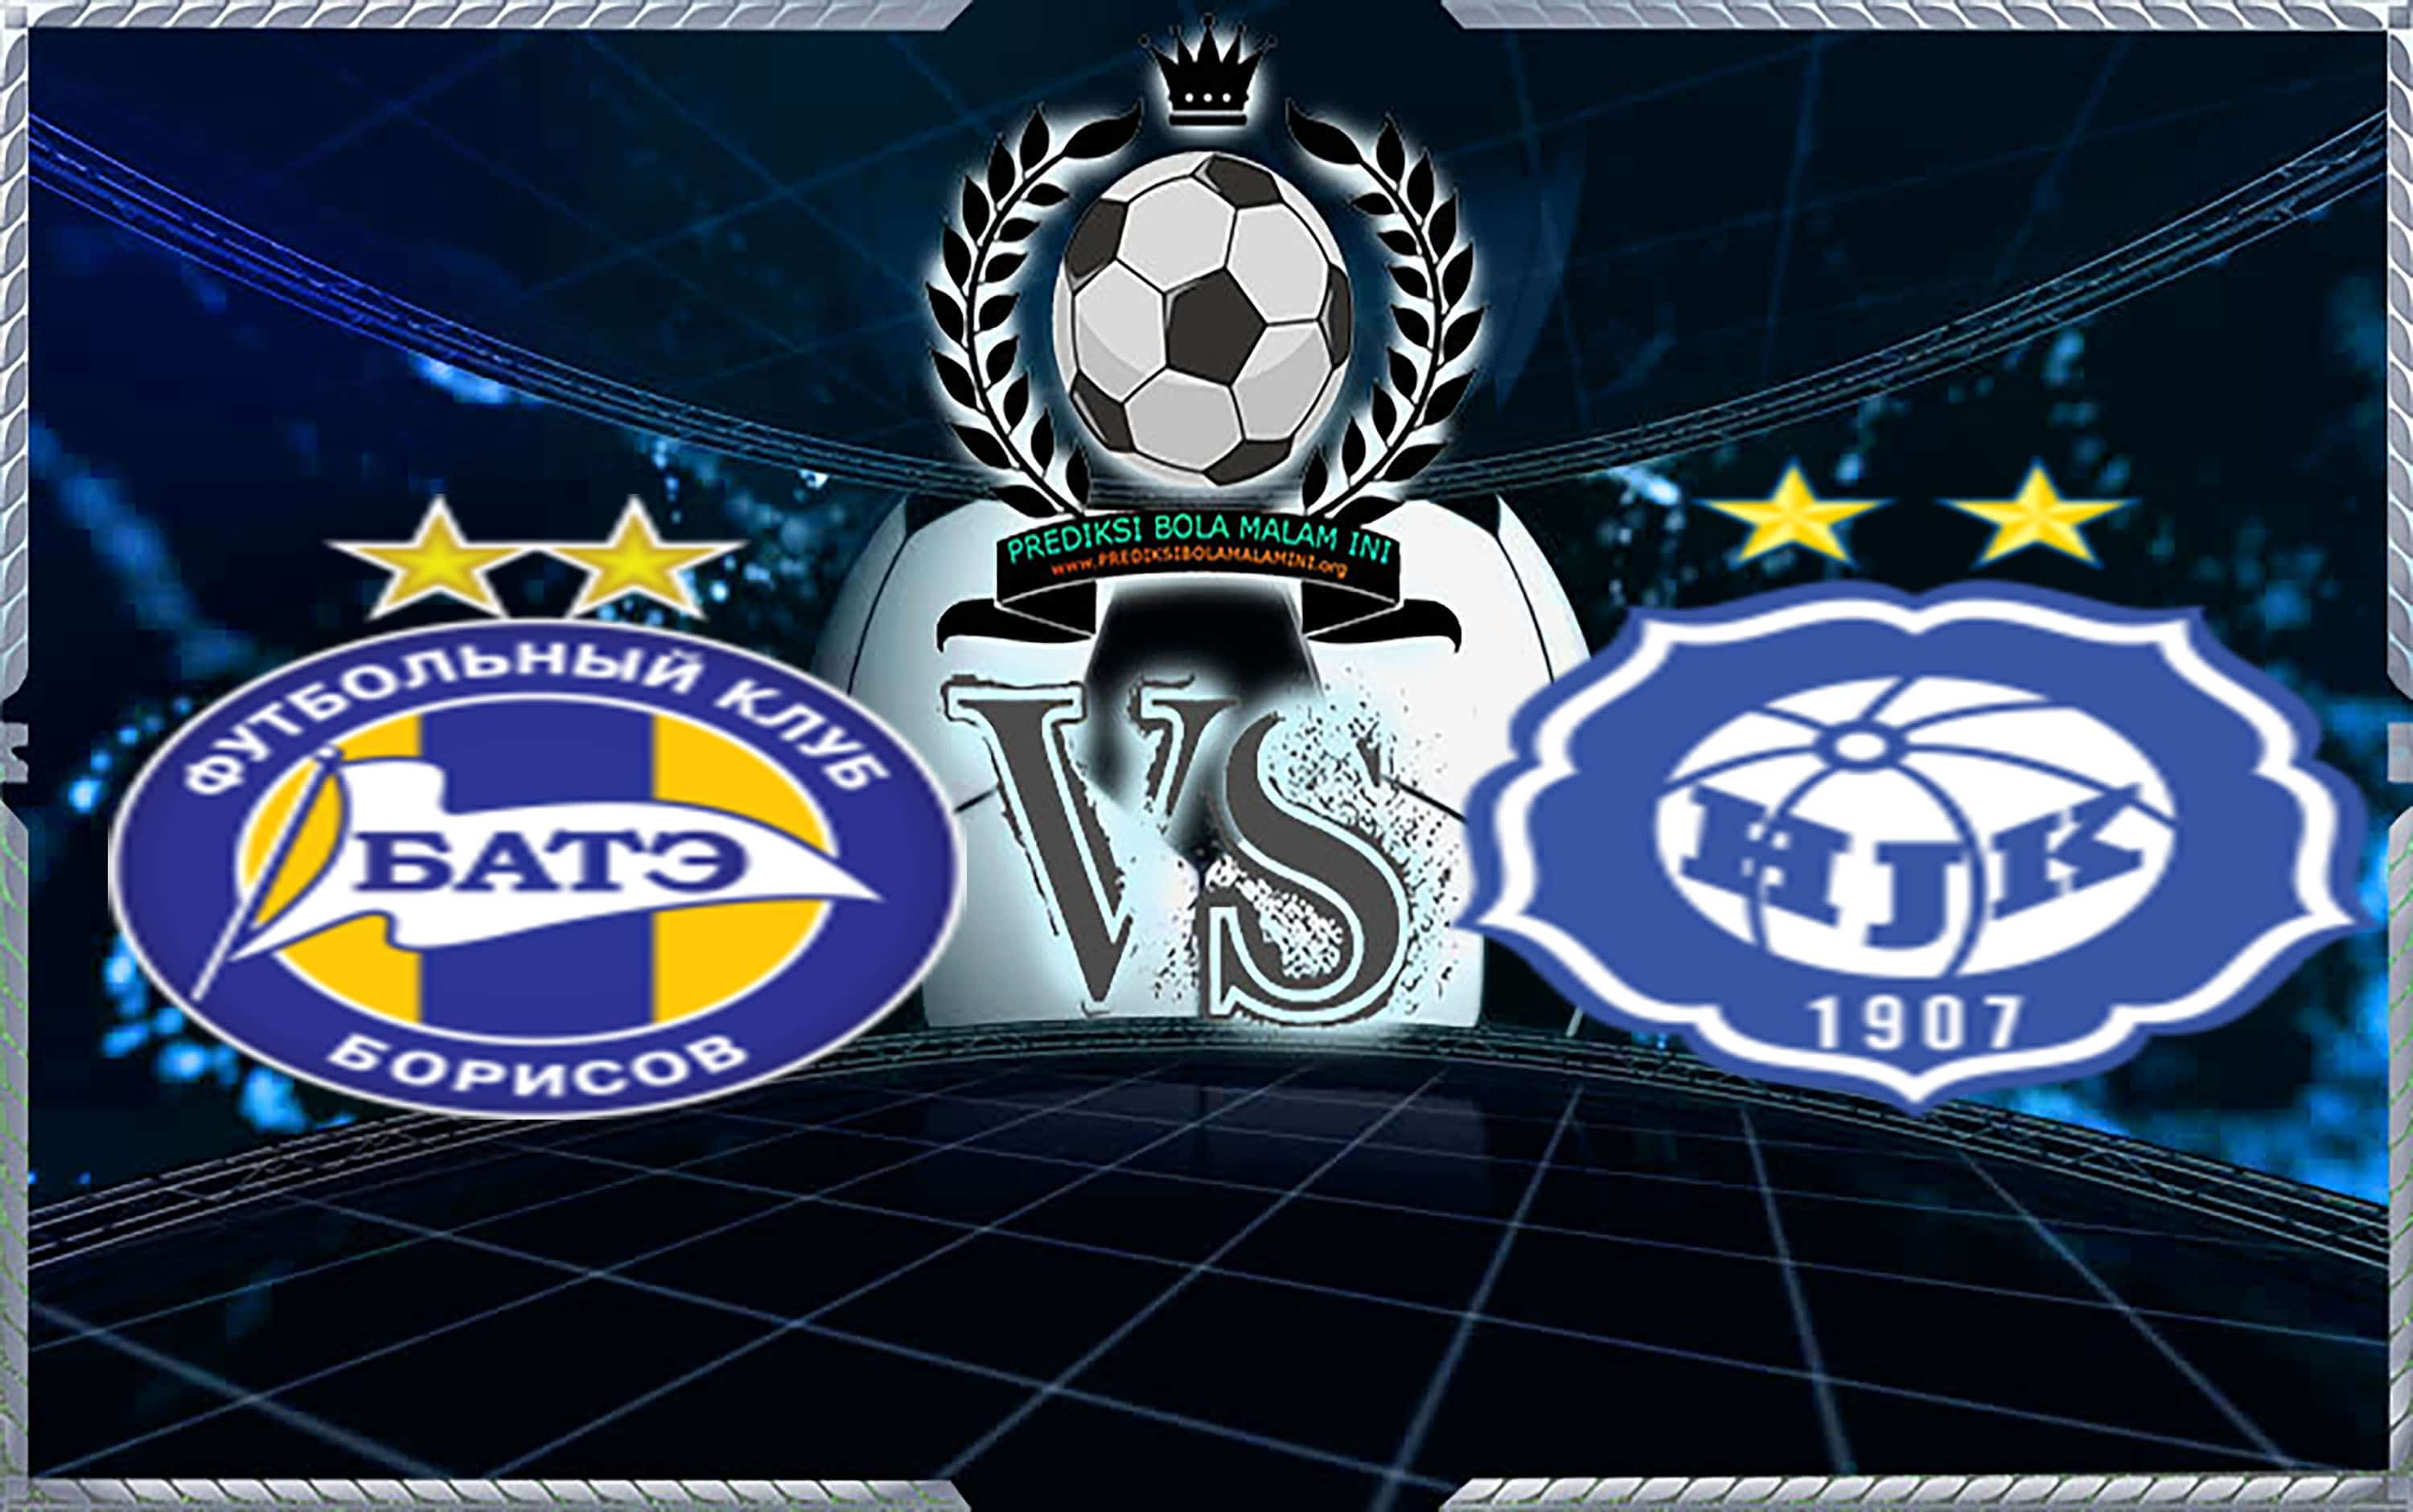 Predicks Skor Bate Vs Hjk Jul 26, 2018